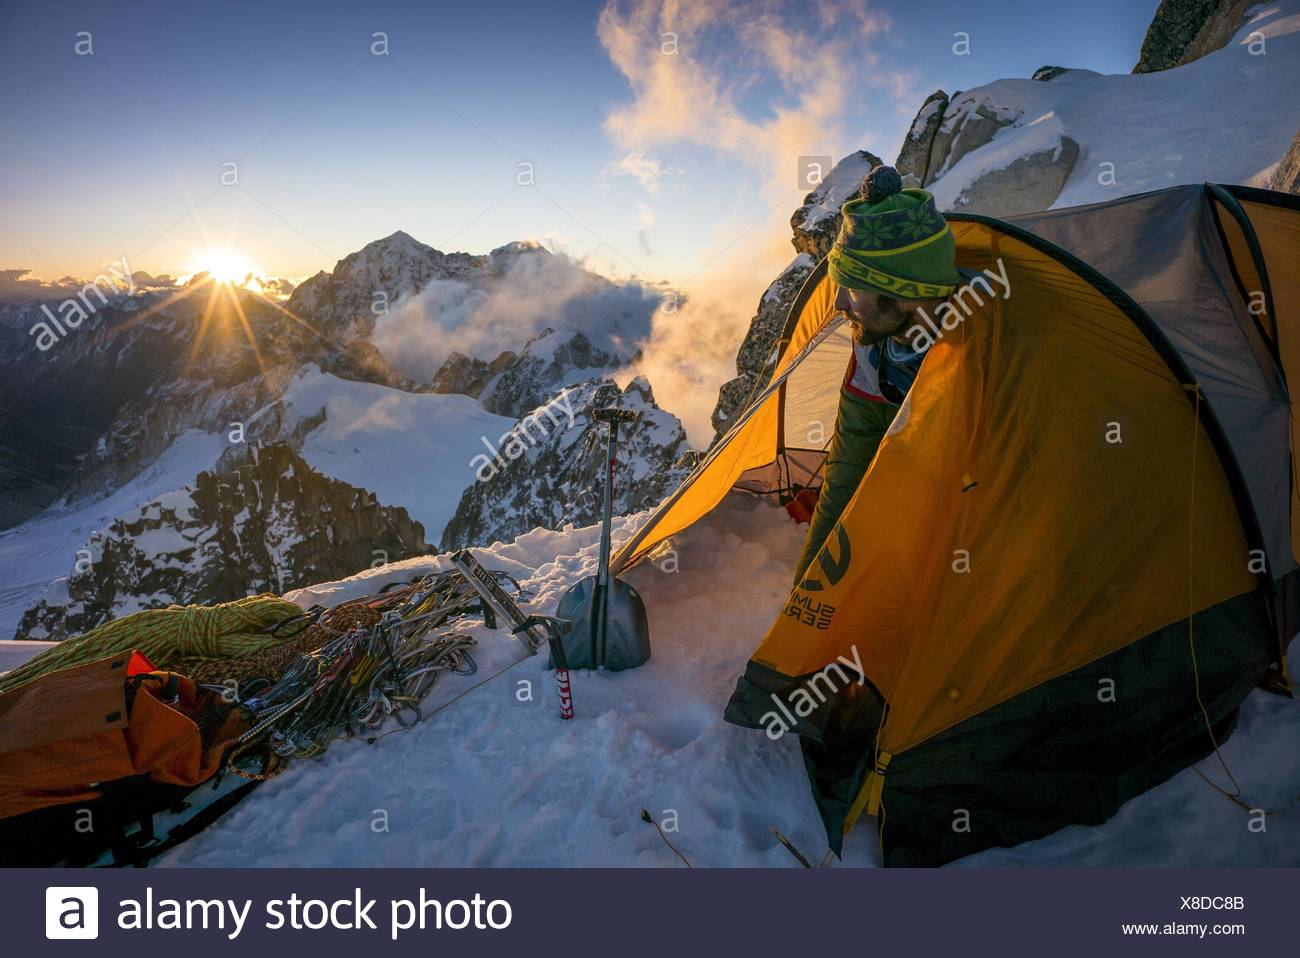 A mountaineer emerges from a tent at Camp III as the sun sets with Gamalang Razi in the distance. - Stock Image